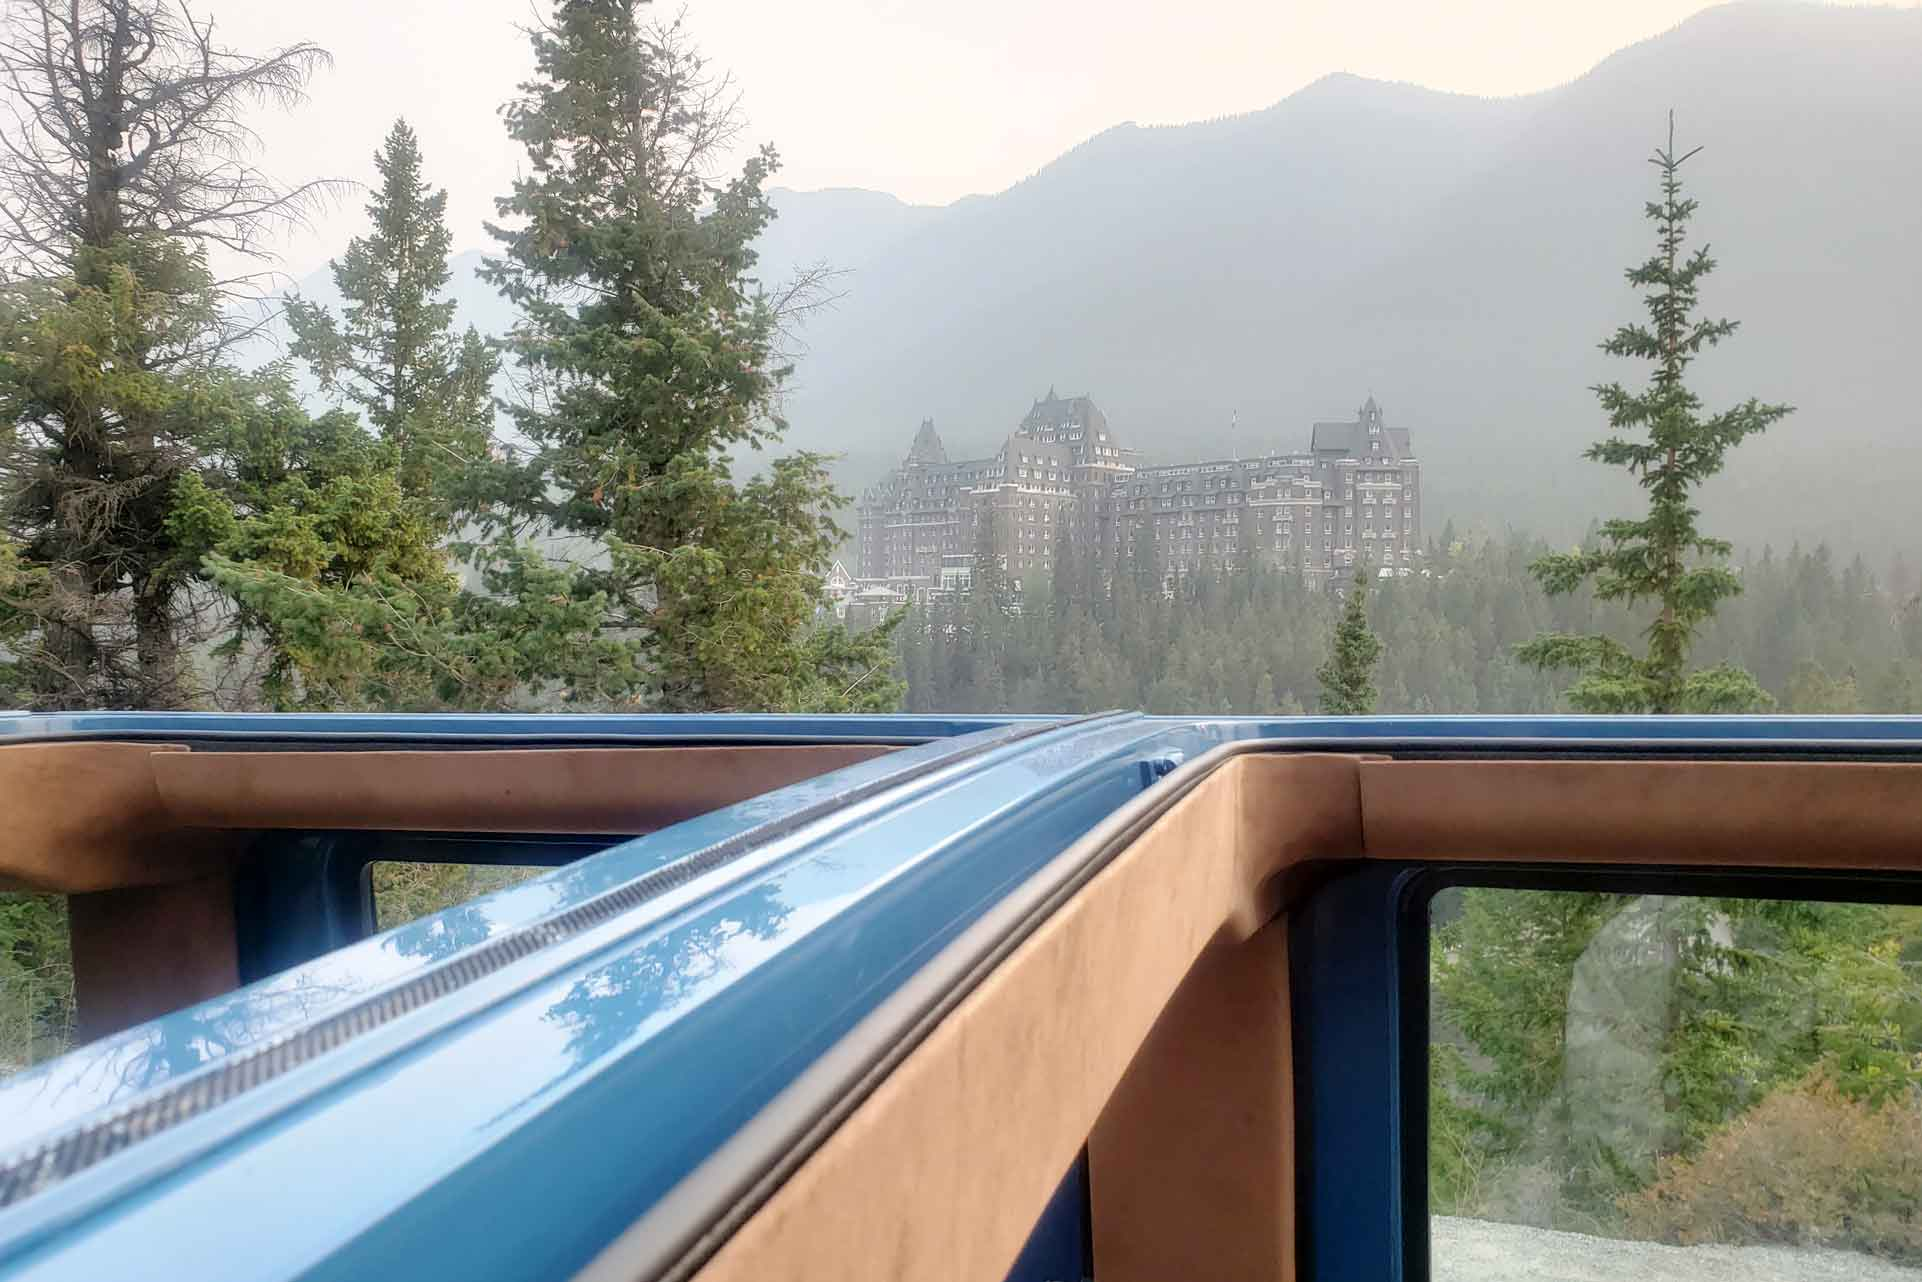 Looking at the Fairmont Banff Springs through the roof of Pursuit's Open Top Touring bus